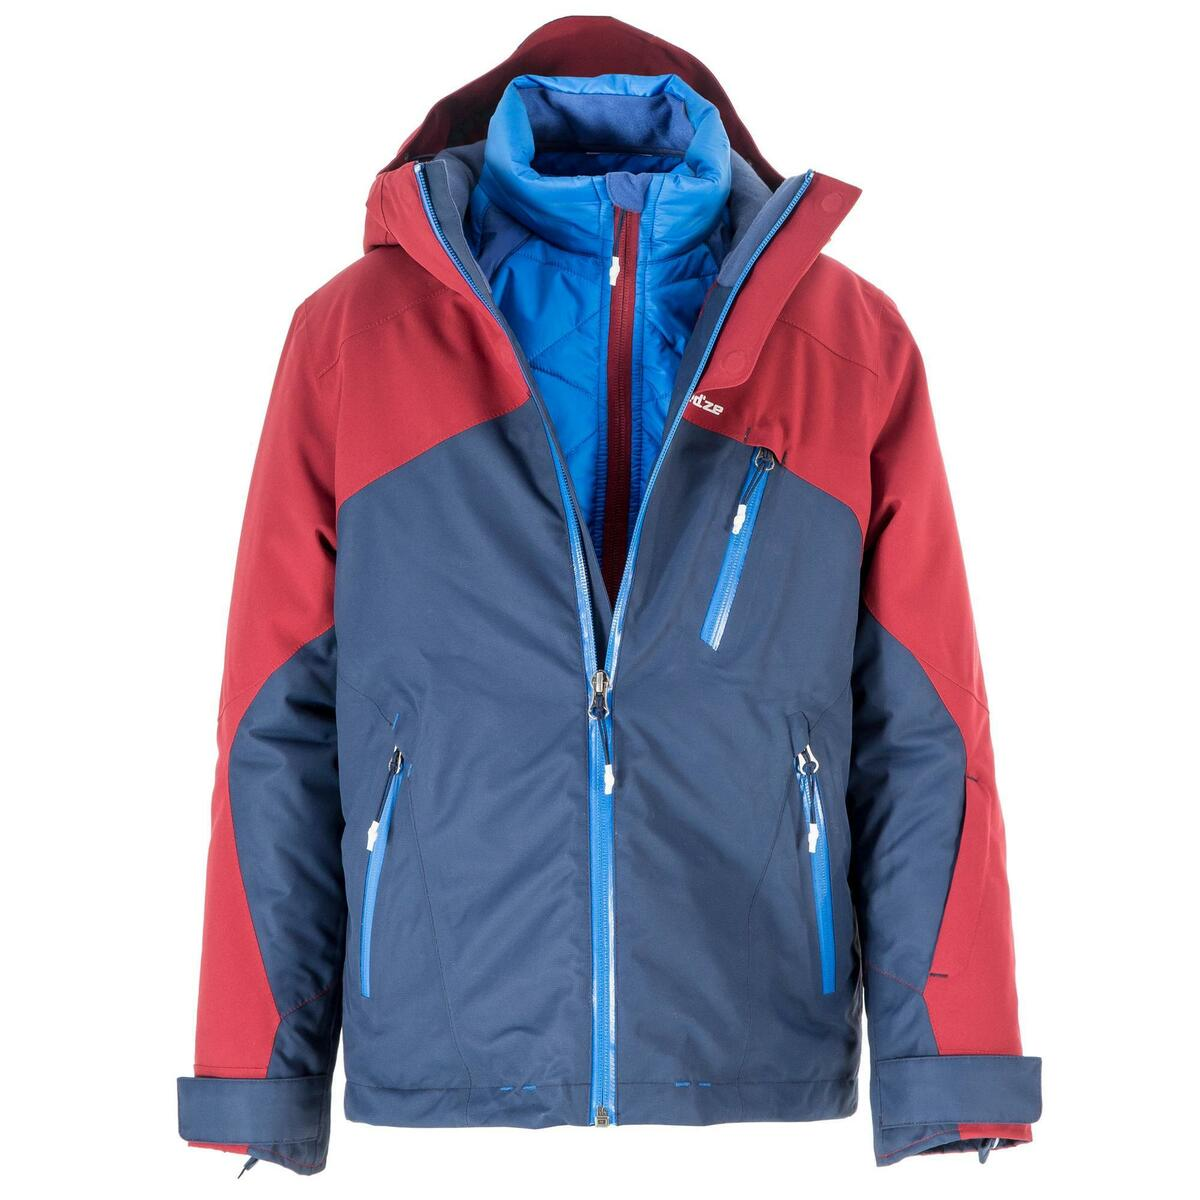 Bild 3 von Skijacke All Mountain Kinder 990 blau bordeaux